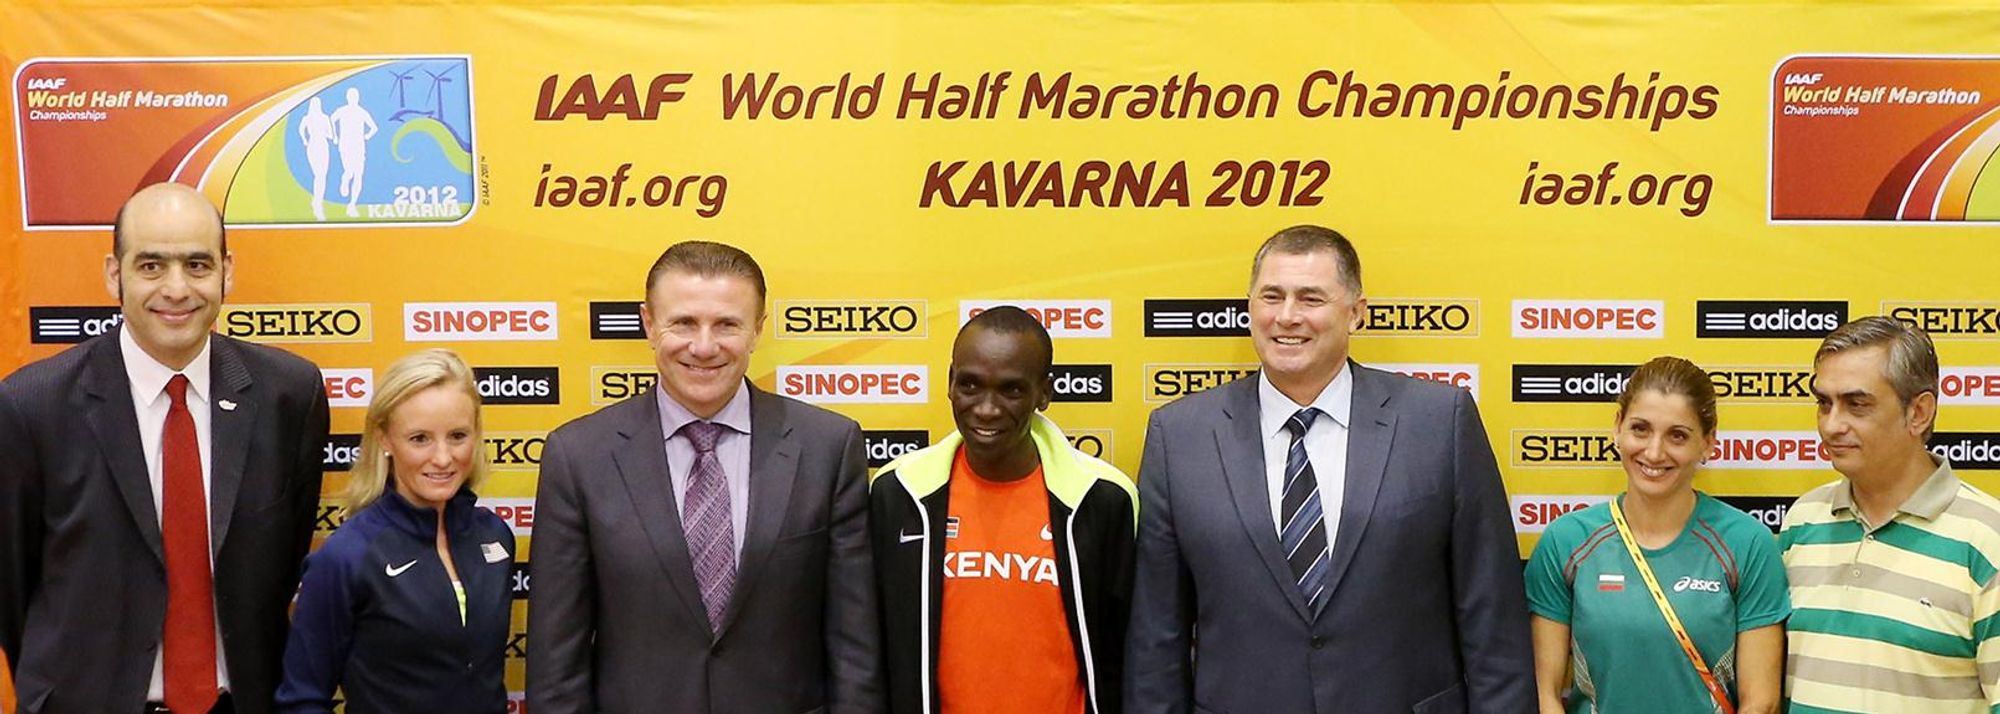 The IAAF / LOC press conference on the eve of the IAAF World Half Marathon Championships, was held today (5) at the Kavarna City Hall.